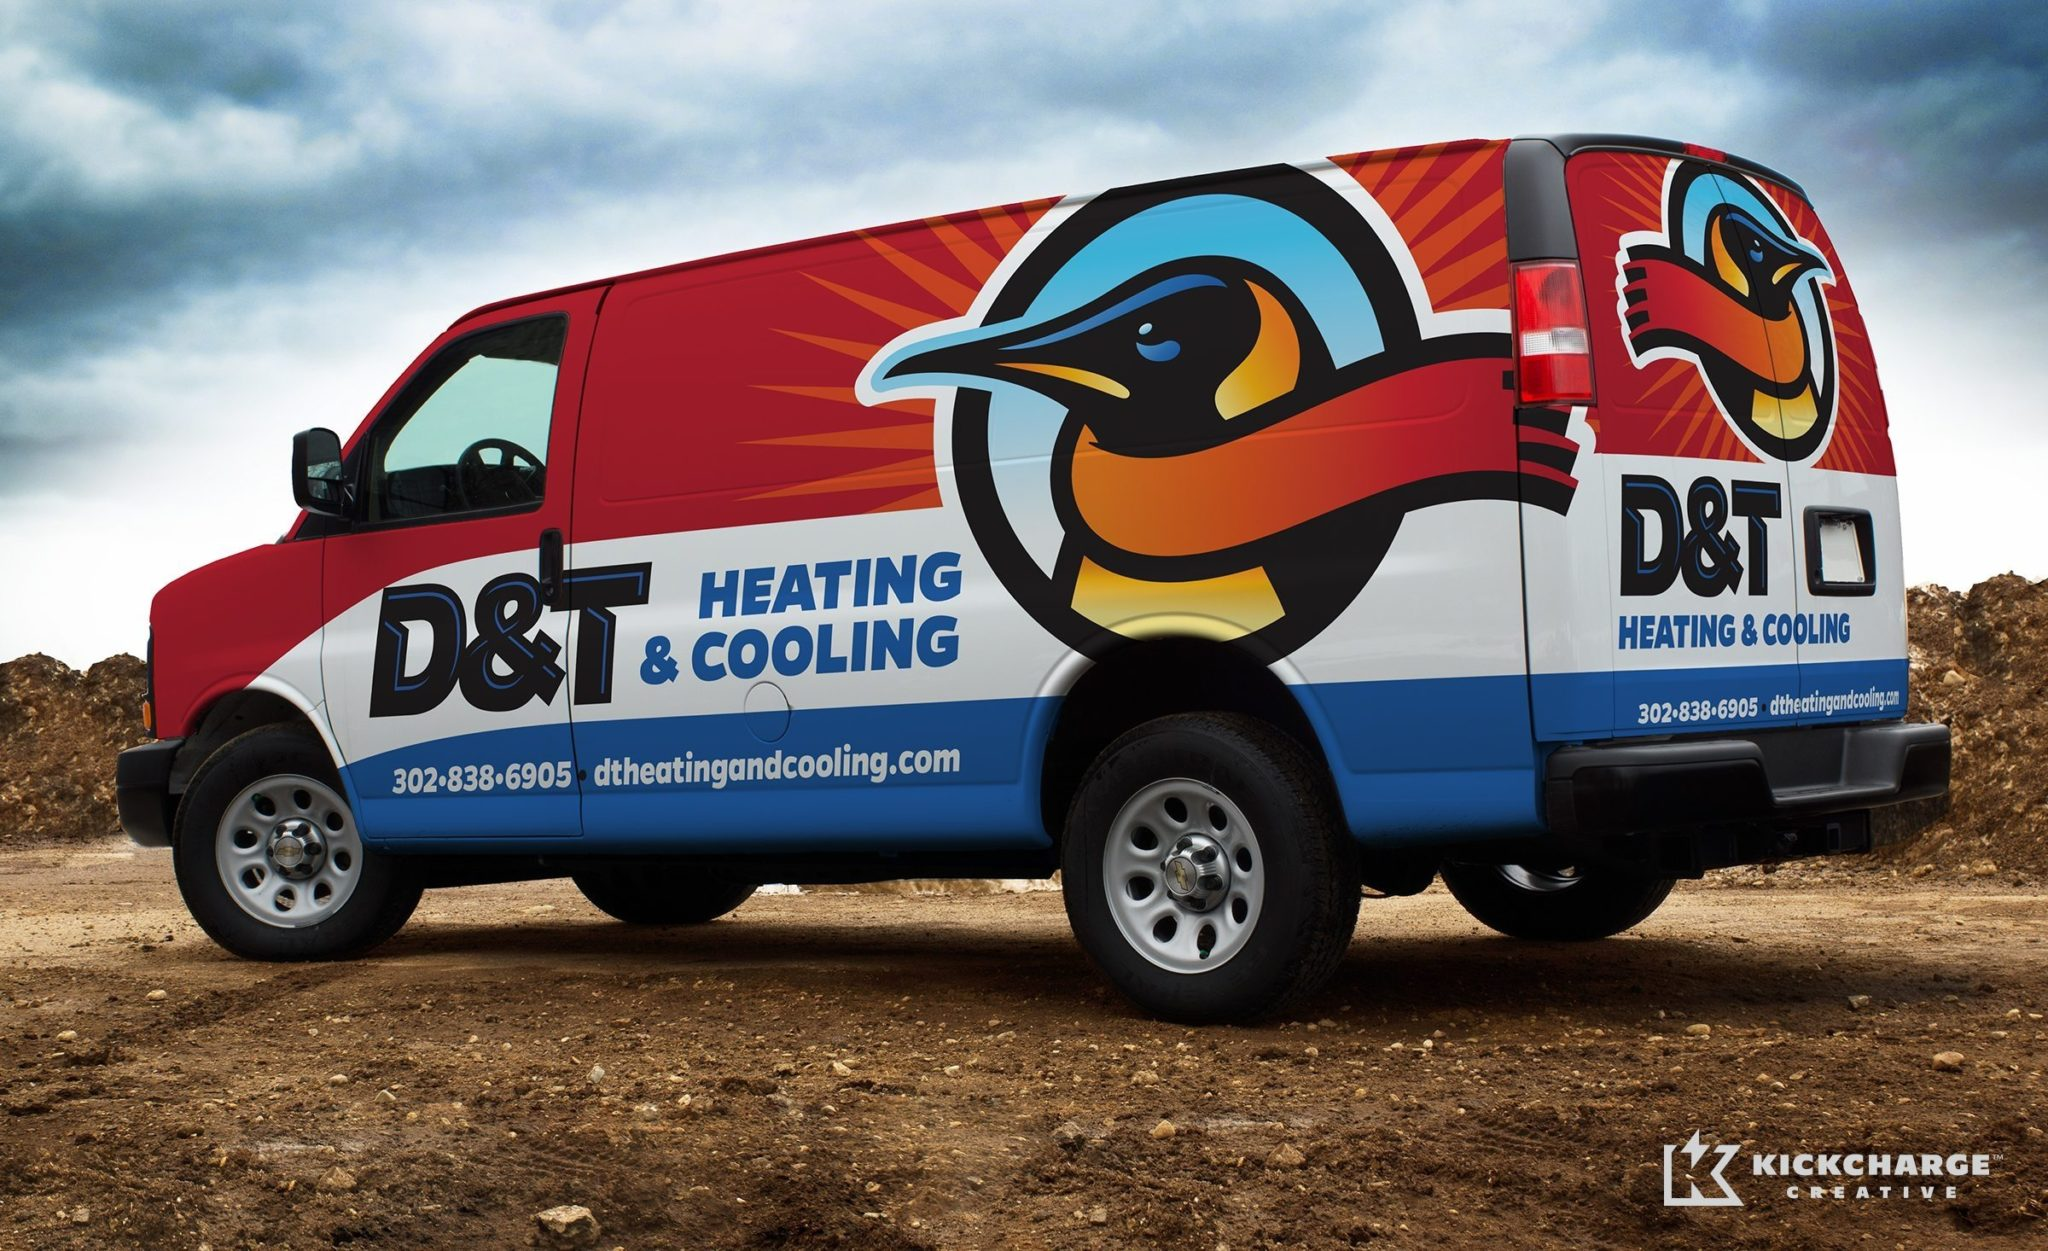 Vehicle wrap design for a HVAC company in Delaware.